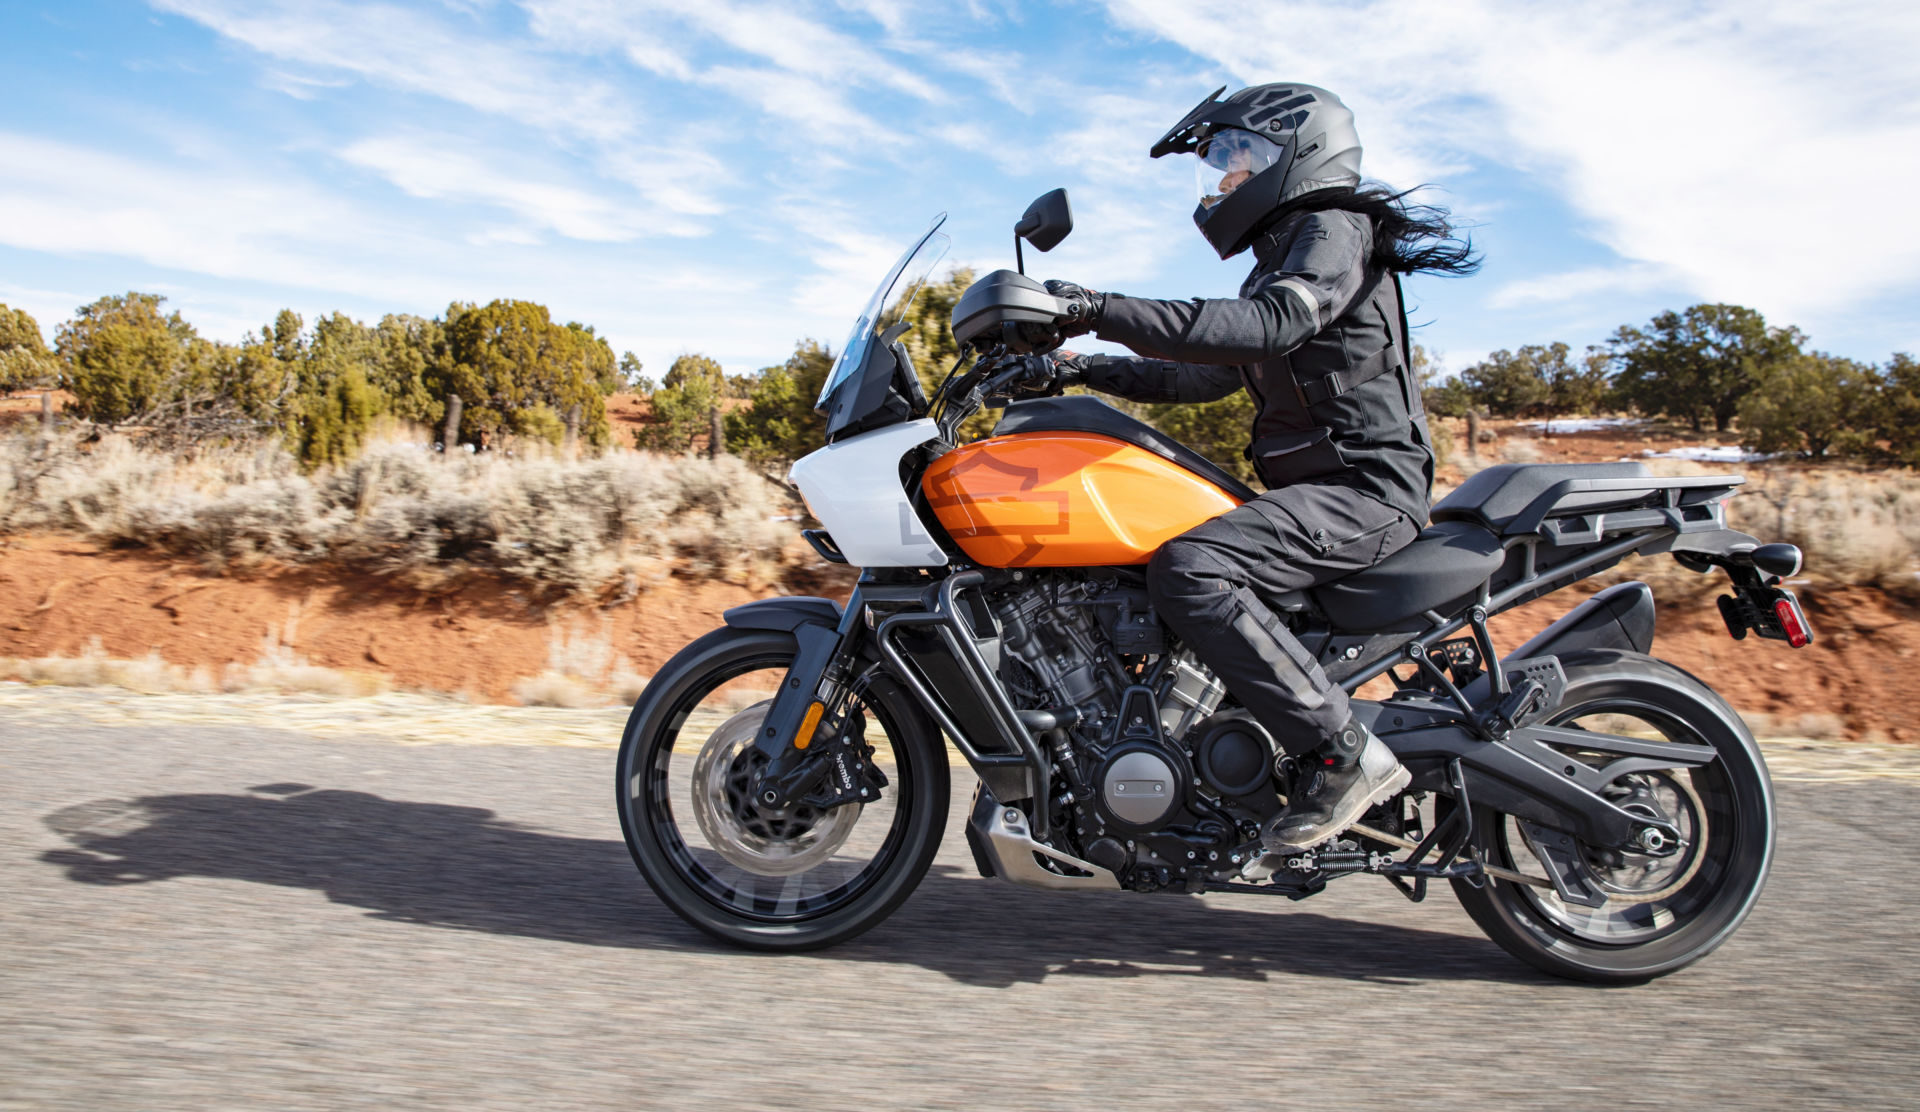 The 2021 Harley-Davidson Pan America 1250 Special can be fitted with Adaptive Ride Height. Photo courtesy Harley-Davidson.